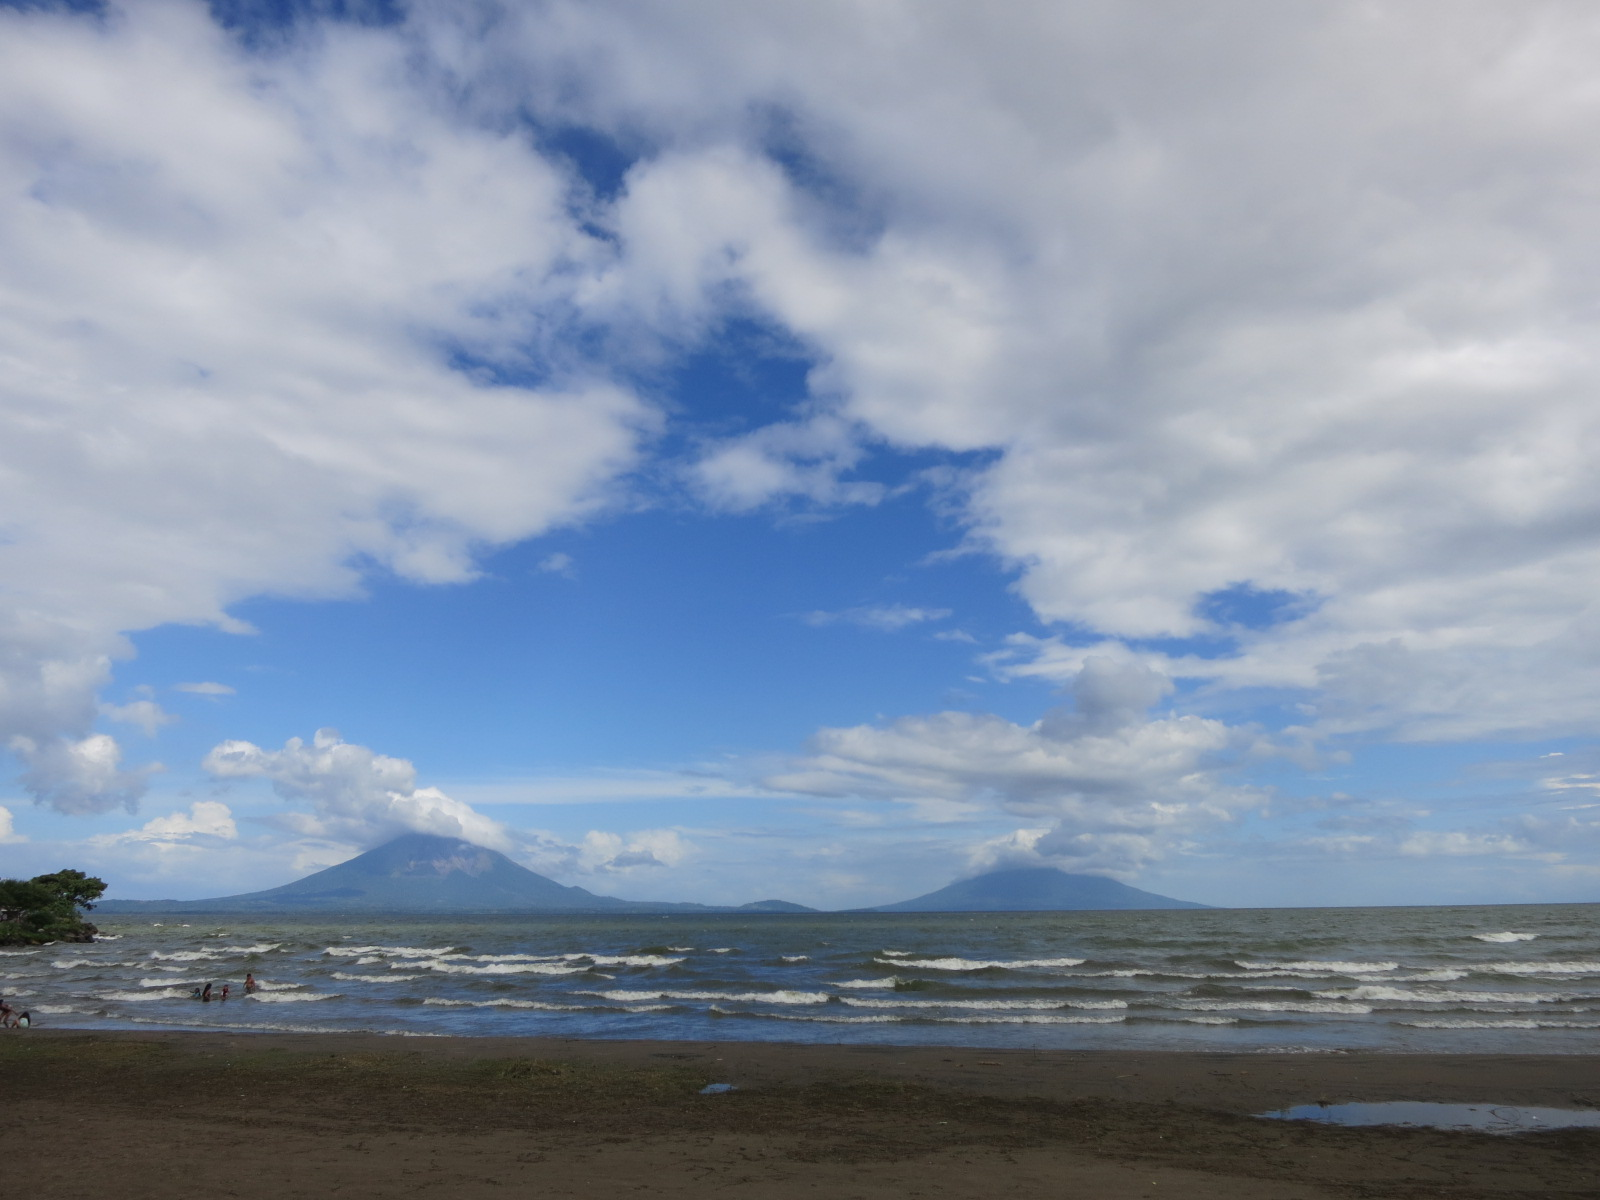 The view of Ometepe from land, in Rivas